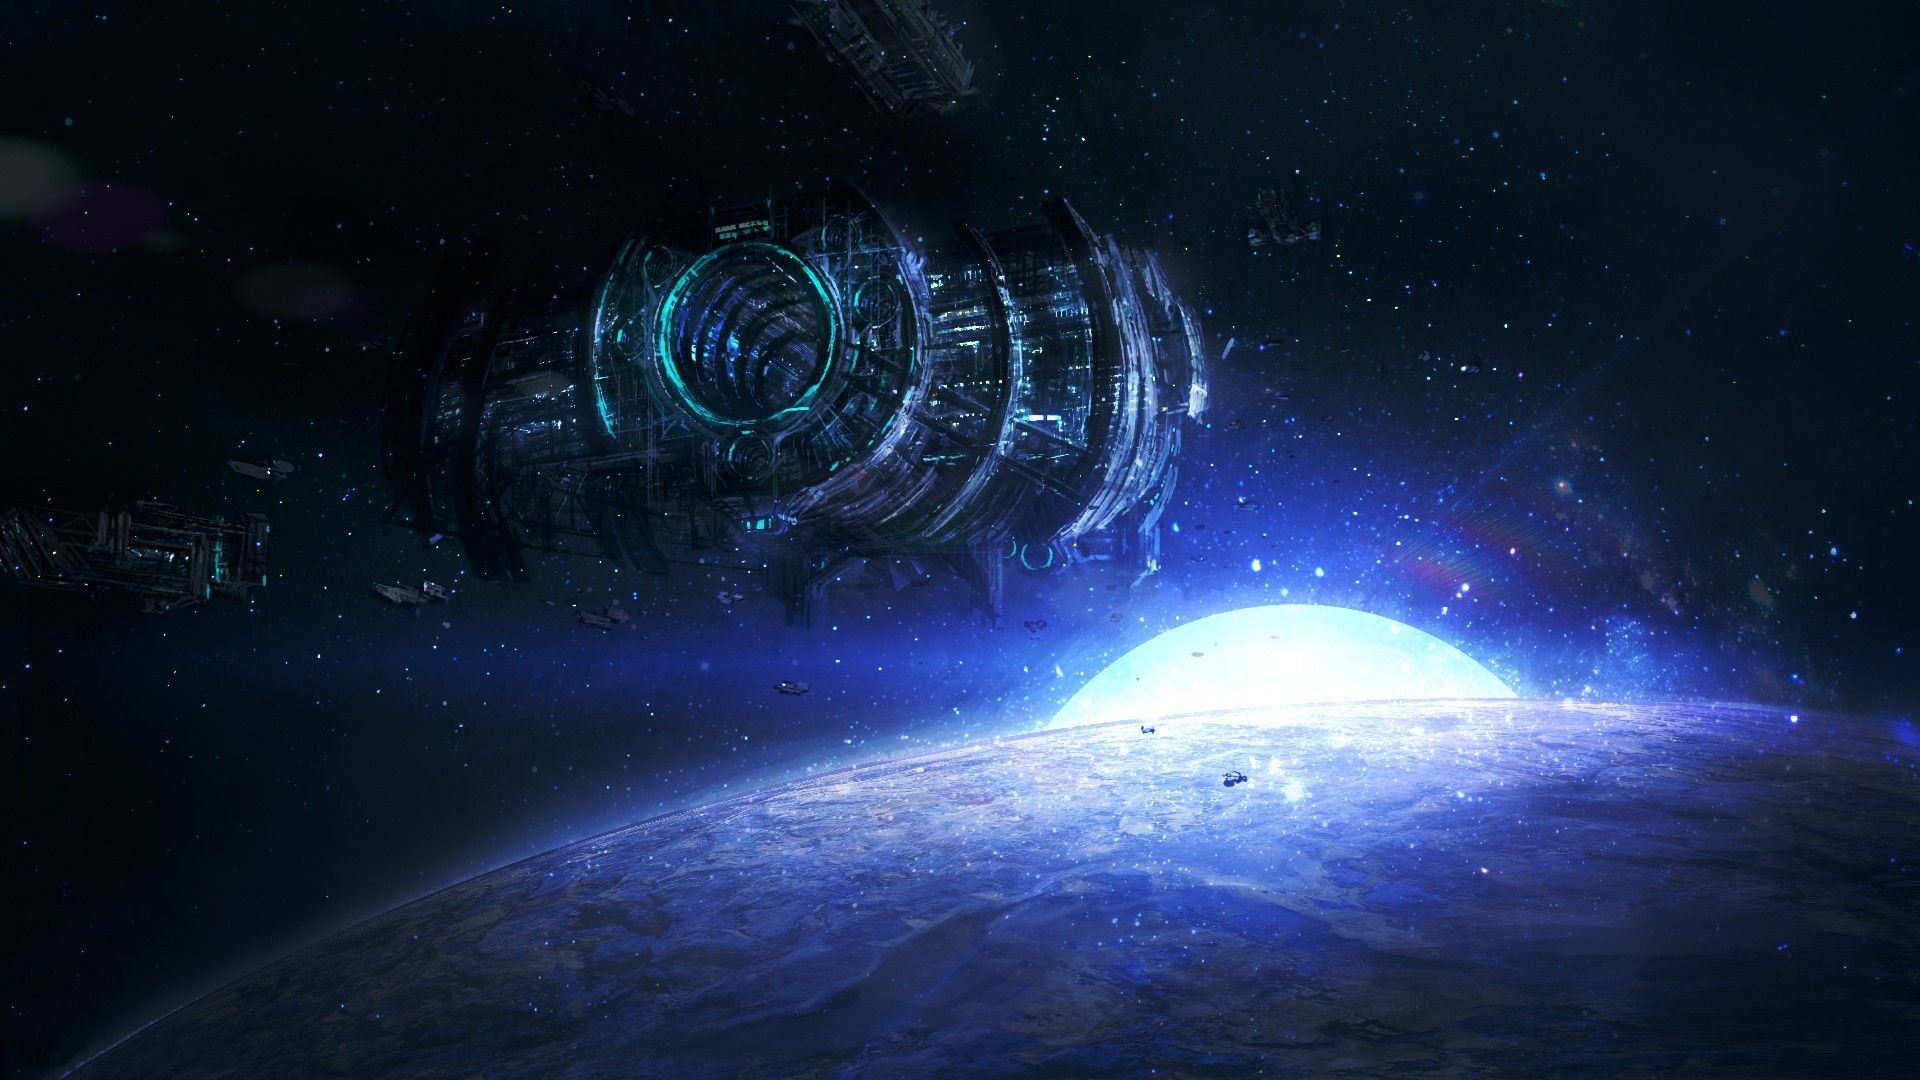 [76+] Cool Space Background Wallpapers On WallpaperSafari